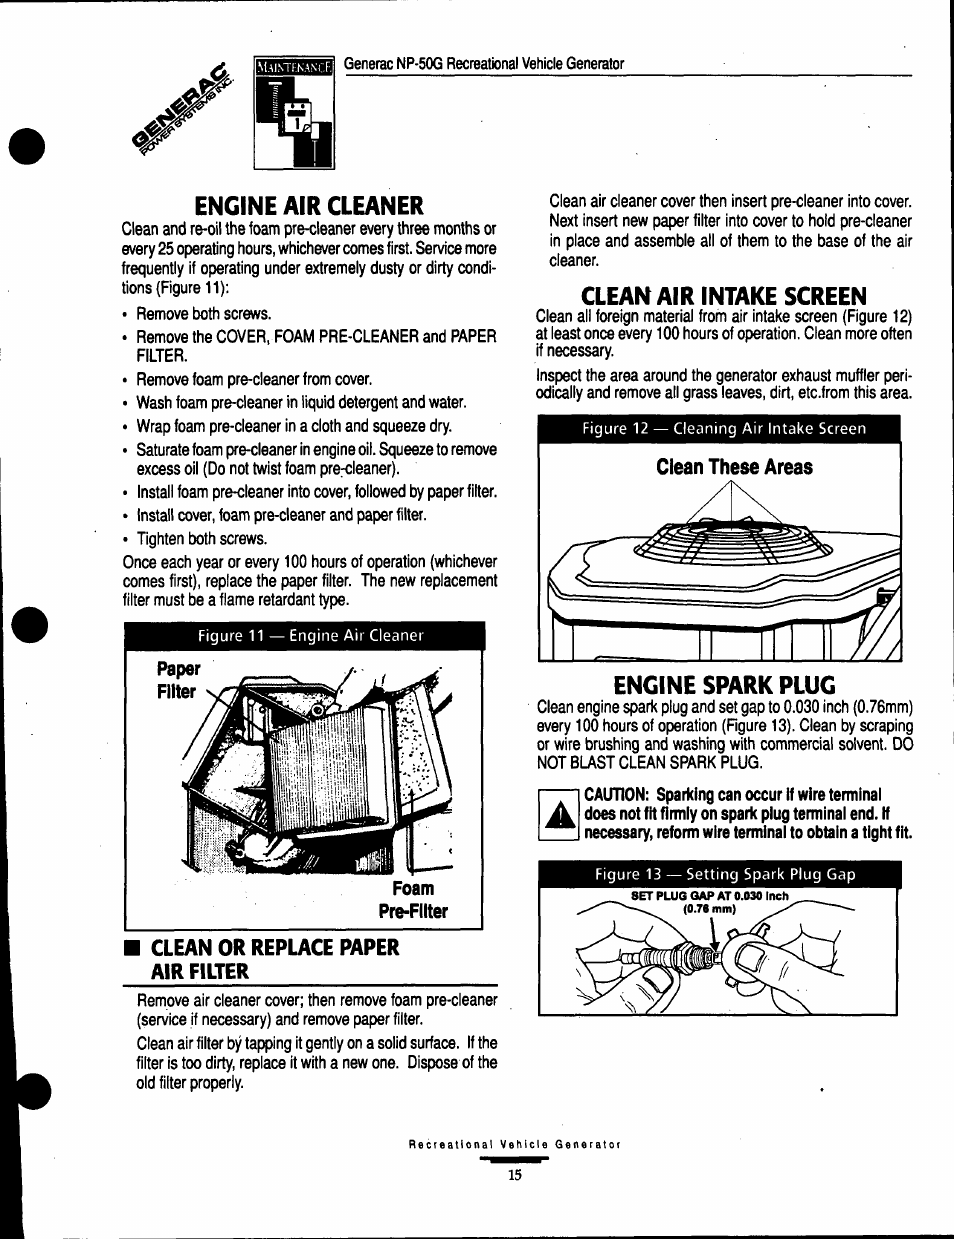 dirty air filter service user manuals user manuals